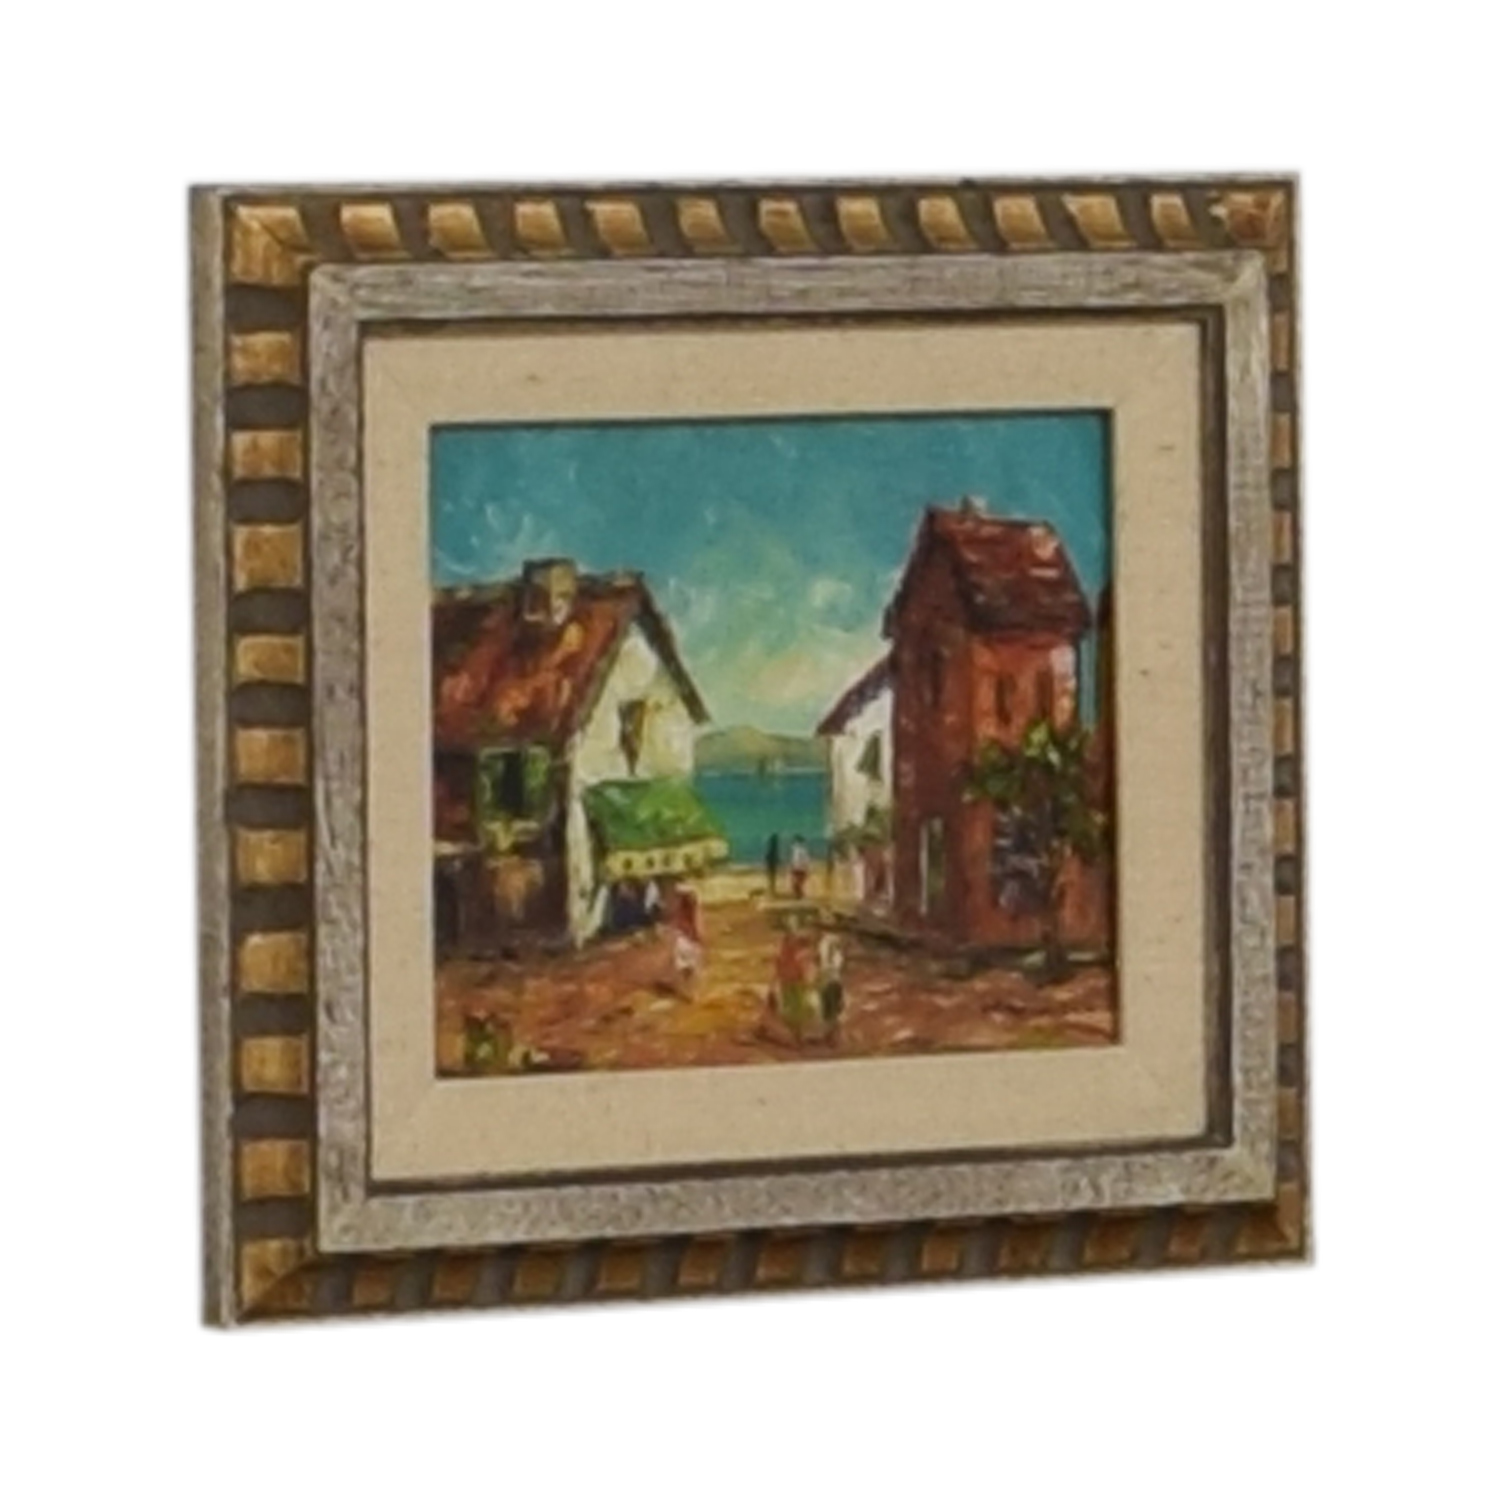 W. Vanicci W. Vanicci Framed Caribbean Oil Painting grey and gold frame